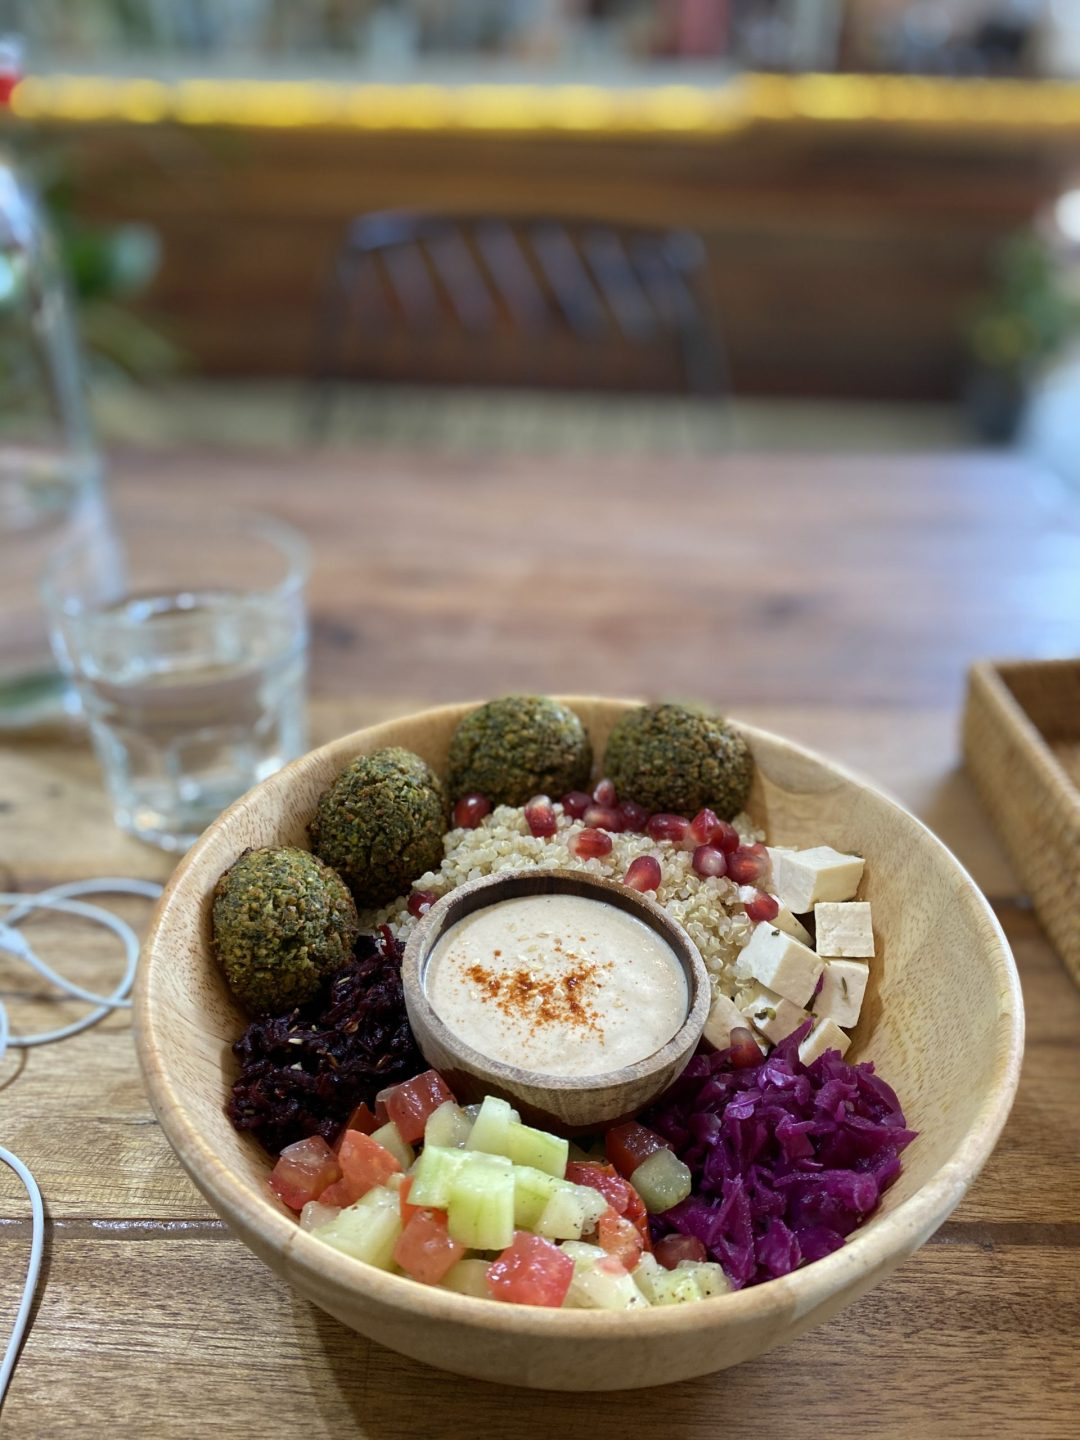 Wooden bowl with falafel and veggies